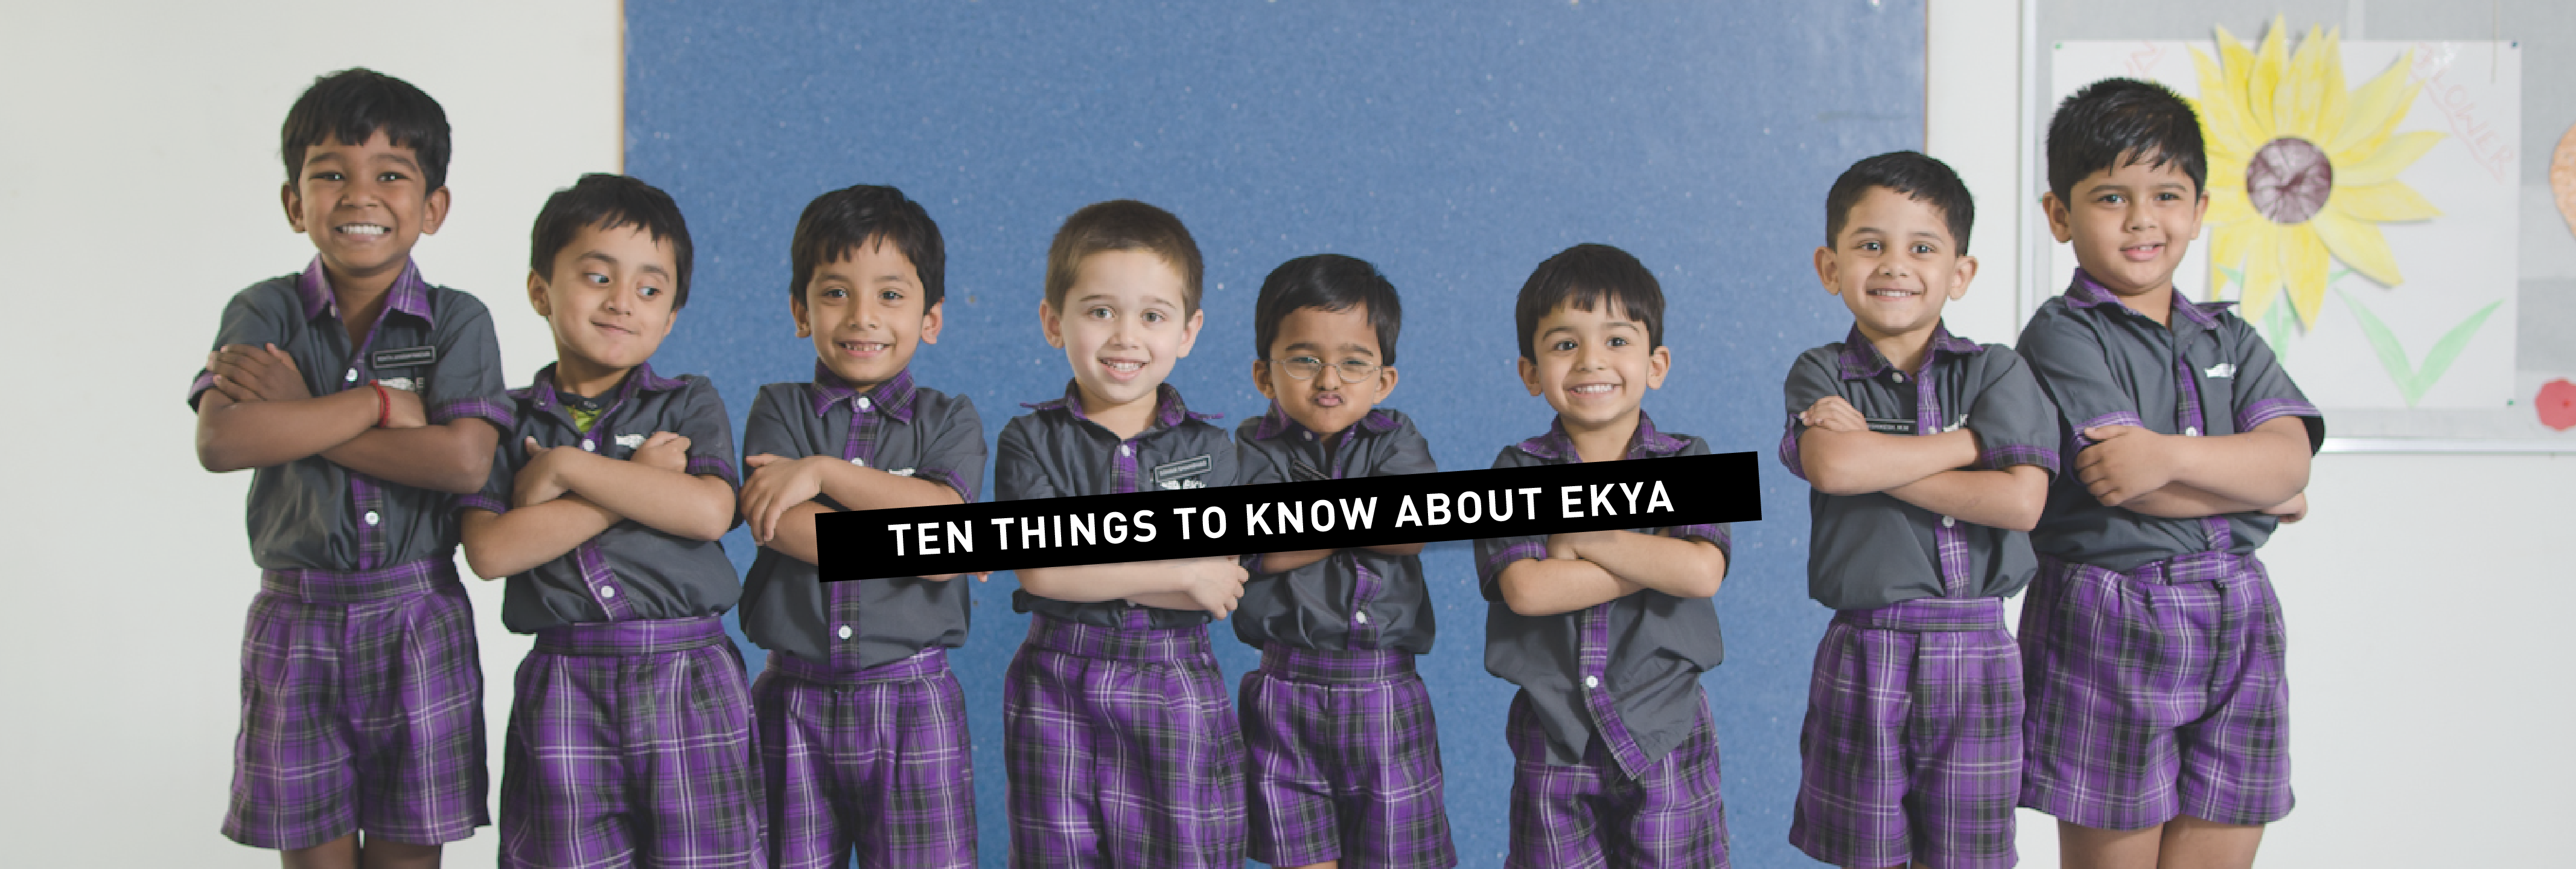 10 Things you should know about Ekya School BTM Layout